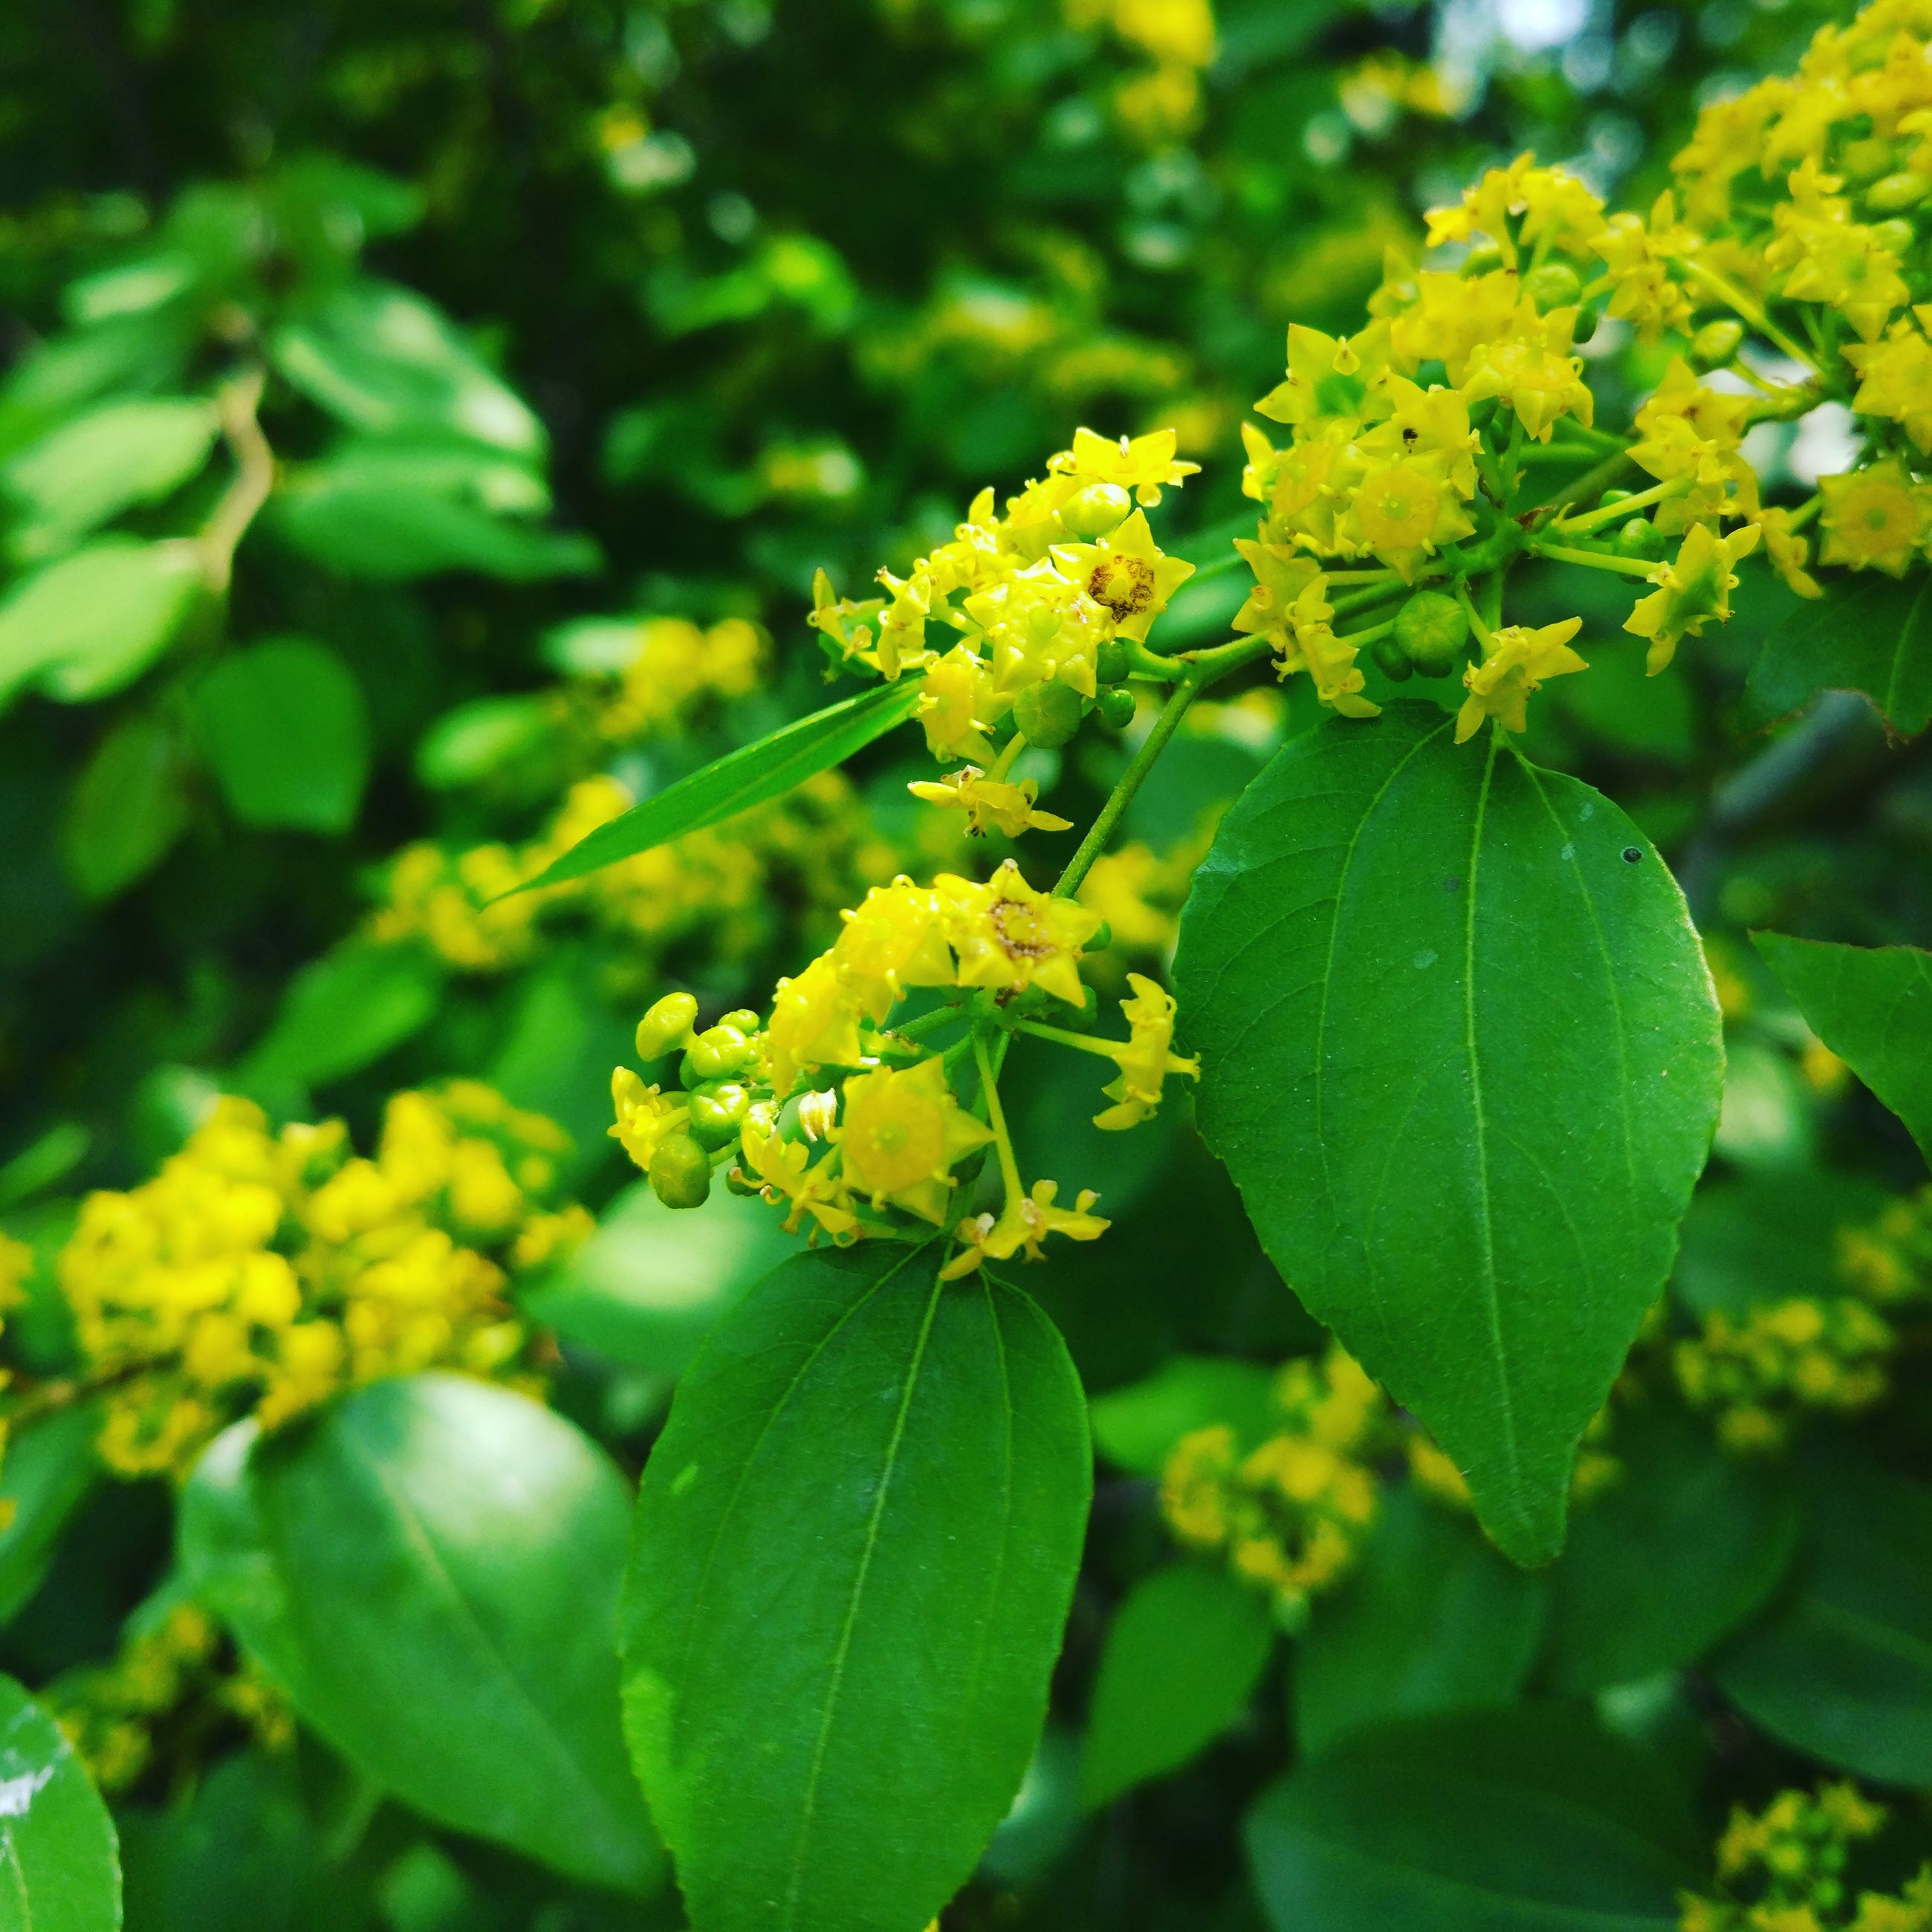 growth, green color, leaf, beauty in nature, nature, flower, freshness, plant, fragility, day, outdoors, yellow, no people, close-up, agriculture, flower head